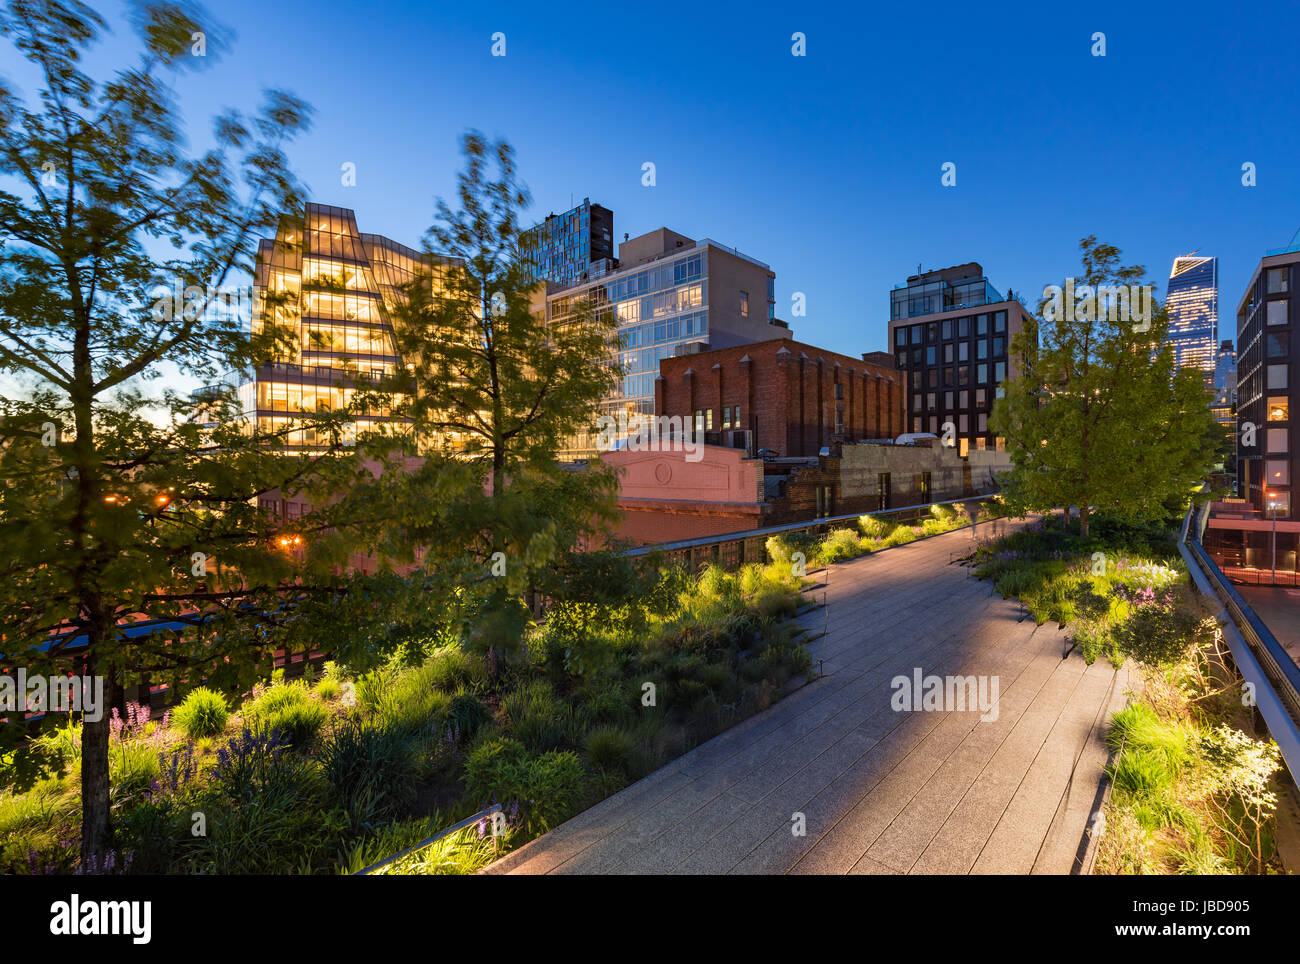 La Highline (alta linea aerea Parco greenway) al crepuscolo in estate. Chelsea, Manhattan New York City Immagini Stock